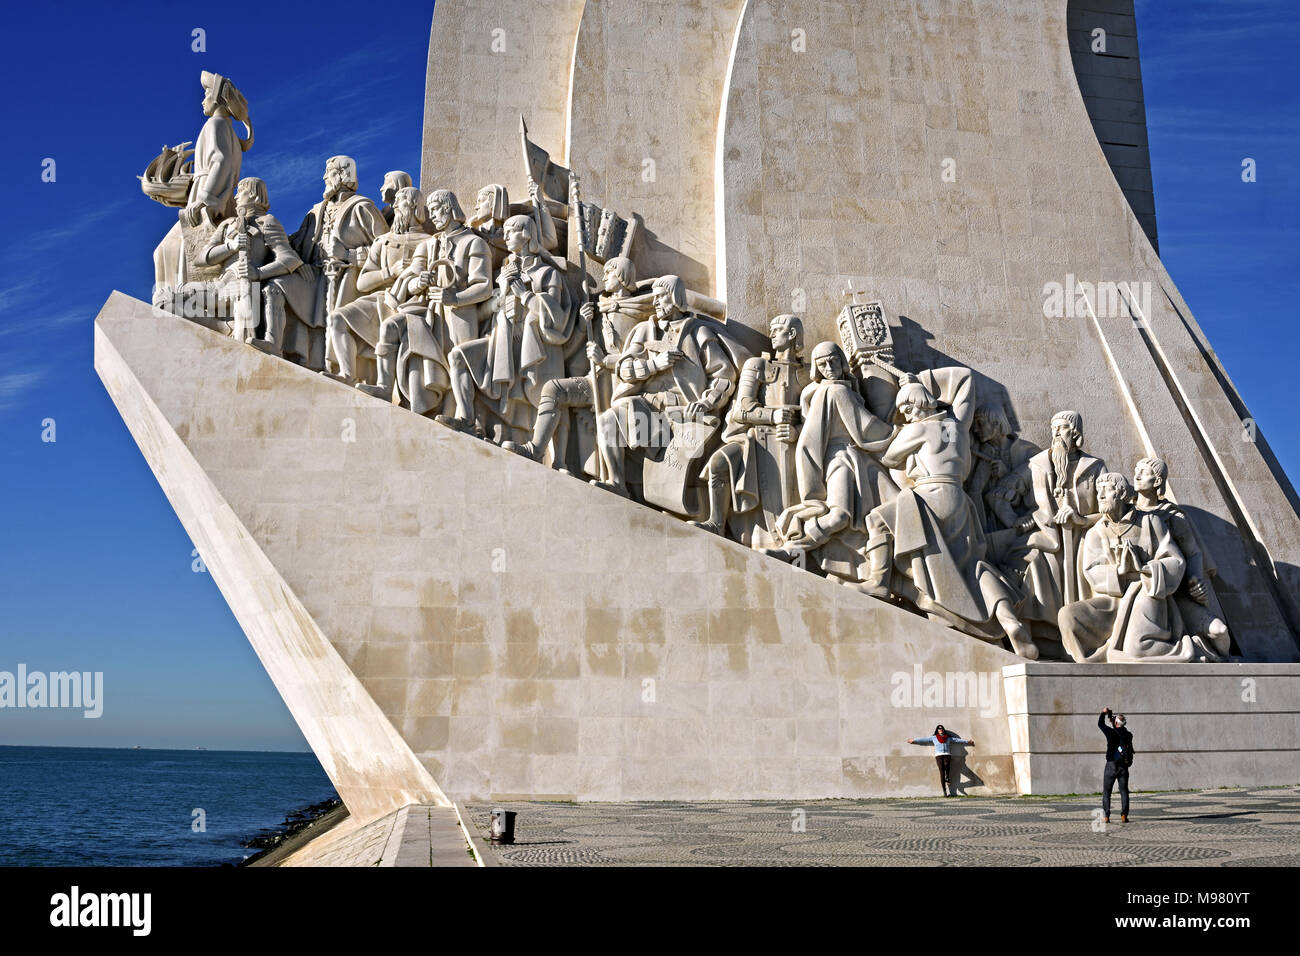 Padrão dos Descobrimentos - Monument of the Discoveries on the northern bank of the Tagus River estuary, parish of Santa Maria de Belém, Lisbon. Located along the river where ships departed to explore and trade with India and Orient, the monument celebrates the Portuguese Age of Discovery (or Age of Exploration) during the 15th and 16th centuries. Portugal ( Vasco da Gama 1460 - 1524 Portuguese explorer and the first European to reach India by sea.) Stock Photo